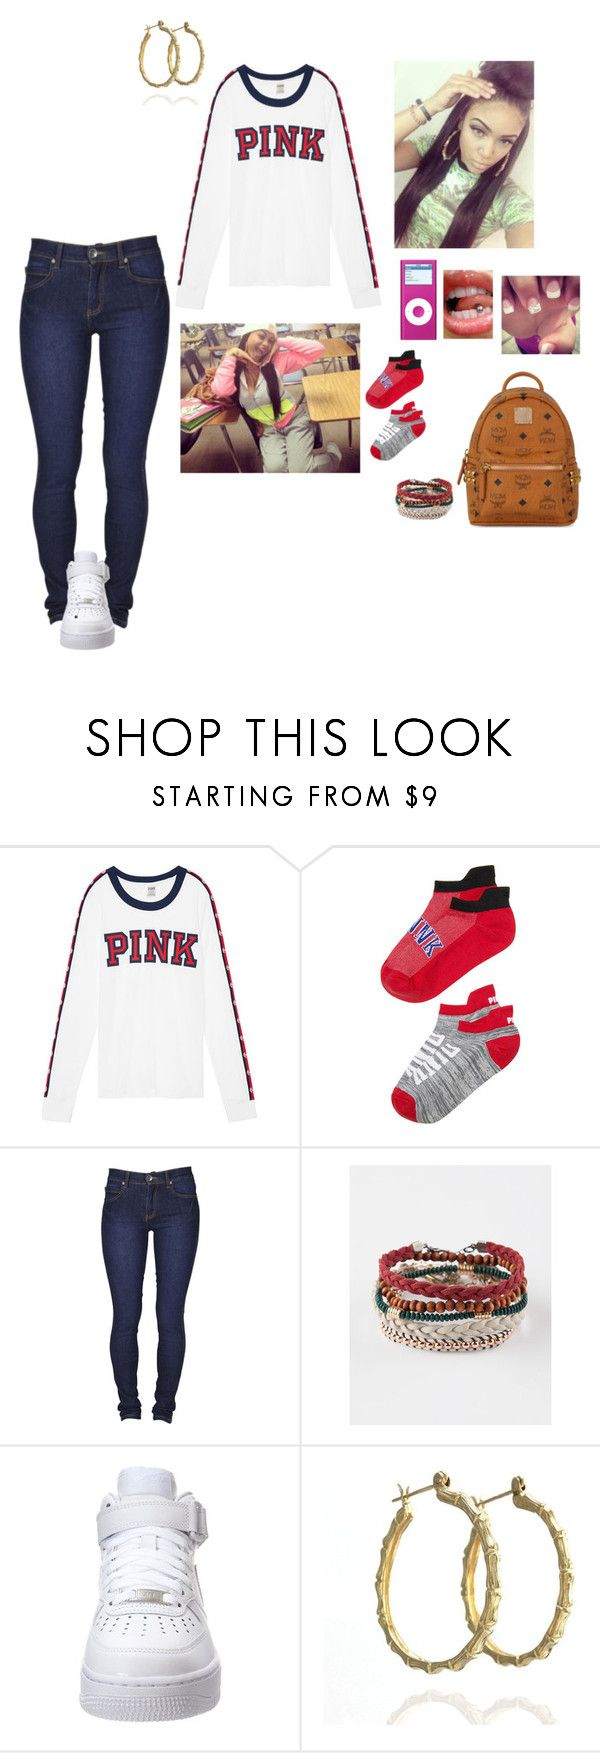 """""""Class clown😝🤡😝"""" by laylakristion on Polyvore featuring Victoria's Secret, Dr. Denim, Full Tilt, NIKE and MCM"""